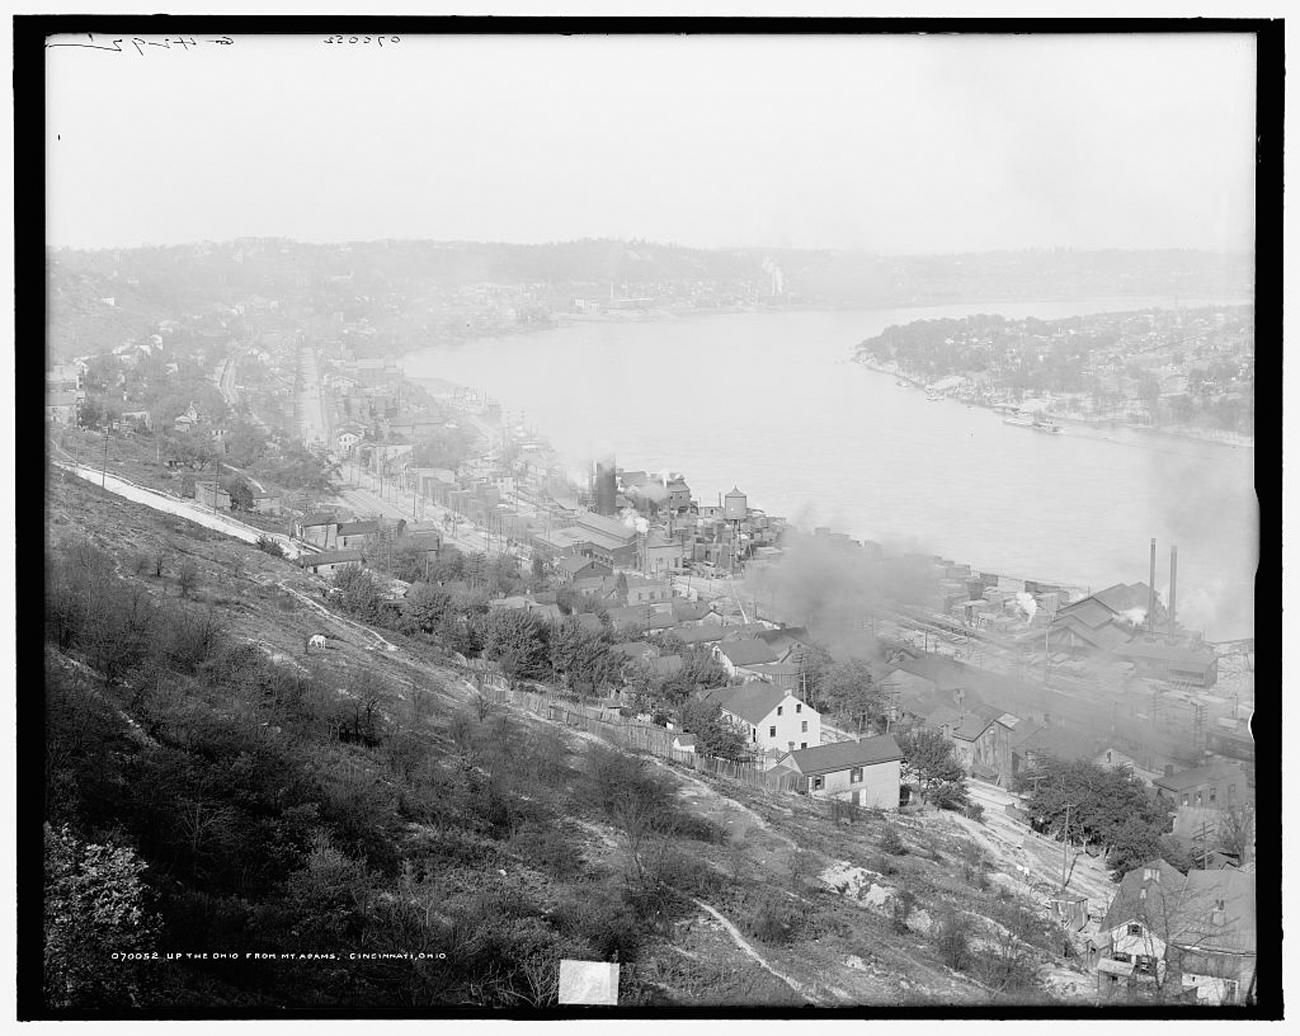 """Up the Ohio from Mt. Adams, Cincinnati, Ohio"" taken some time between 1890 and 1910 / Image: Detroit Publishing Co. accessed via the Library of Congress // Published: 3.4.19"